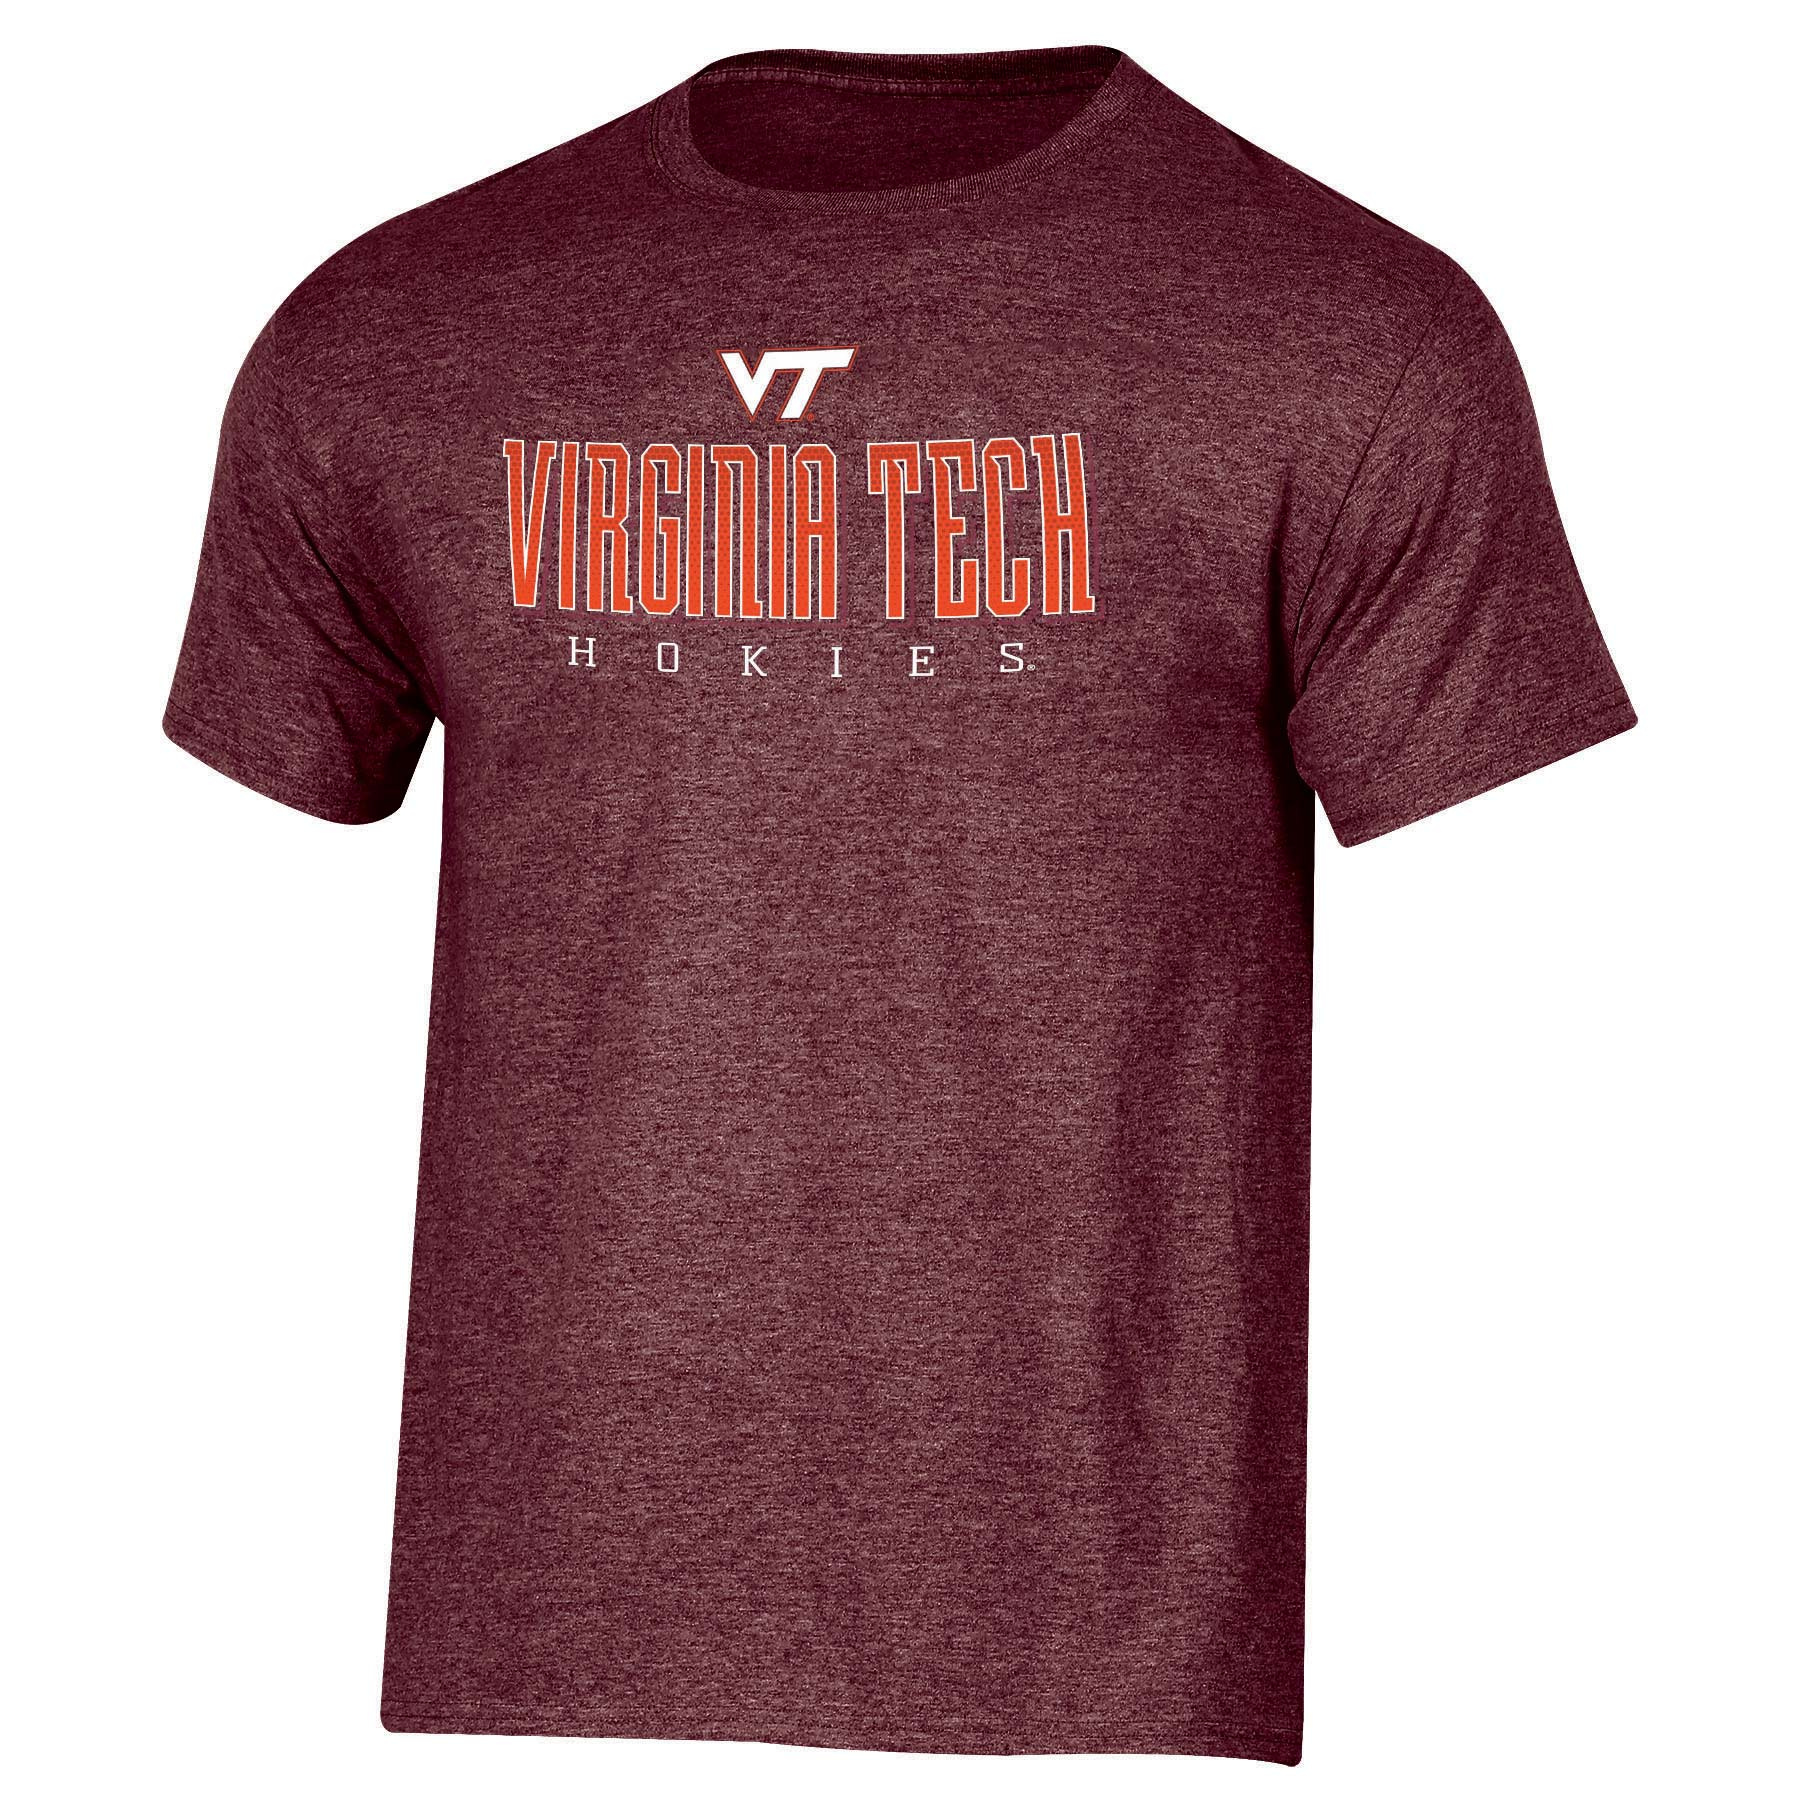 d6ad920b91b Virginia Tech Hokies Team Shop - Walmart.com